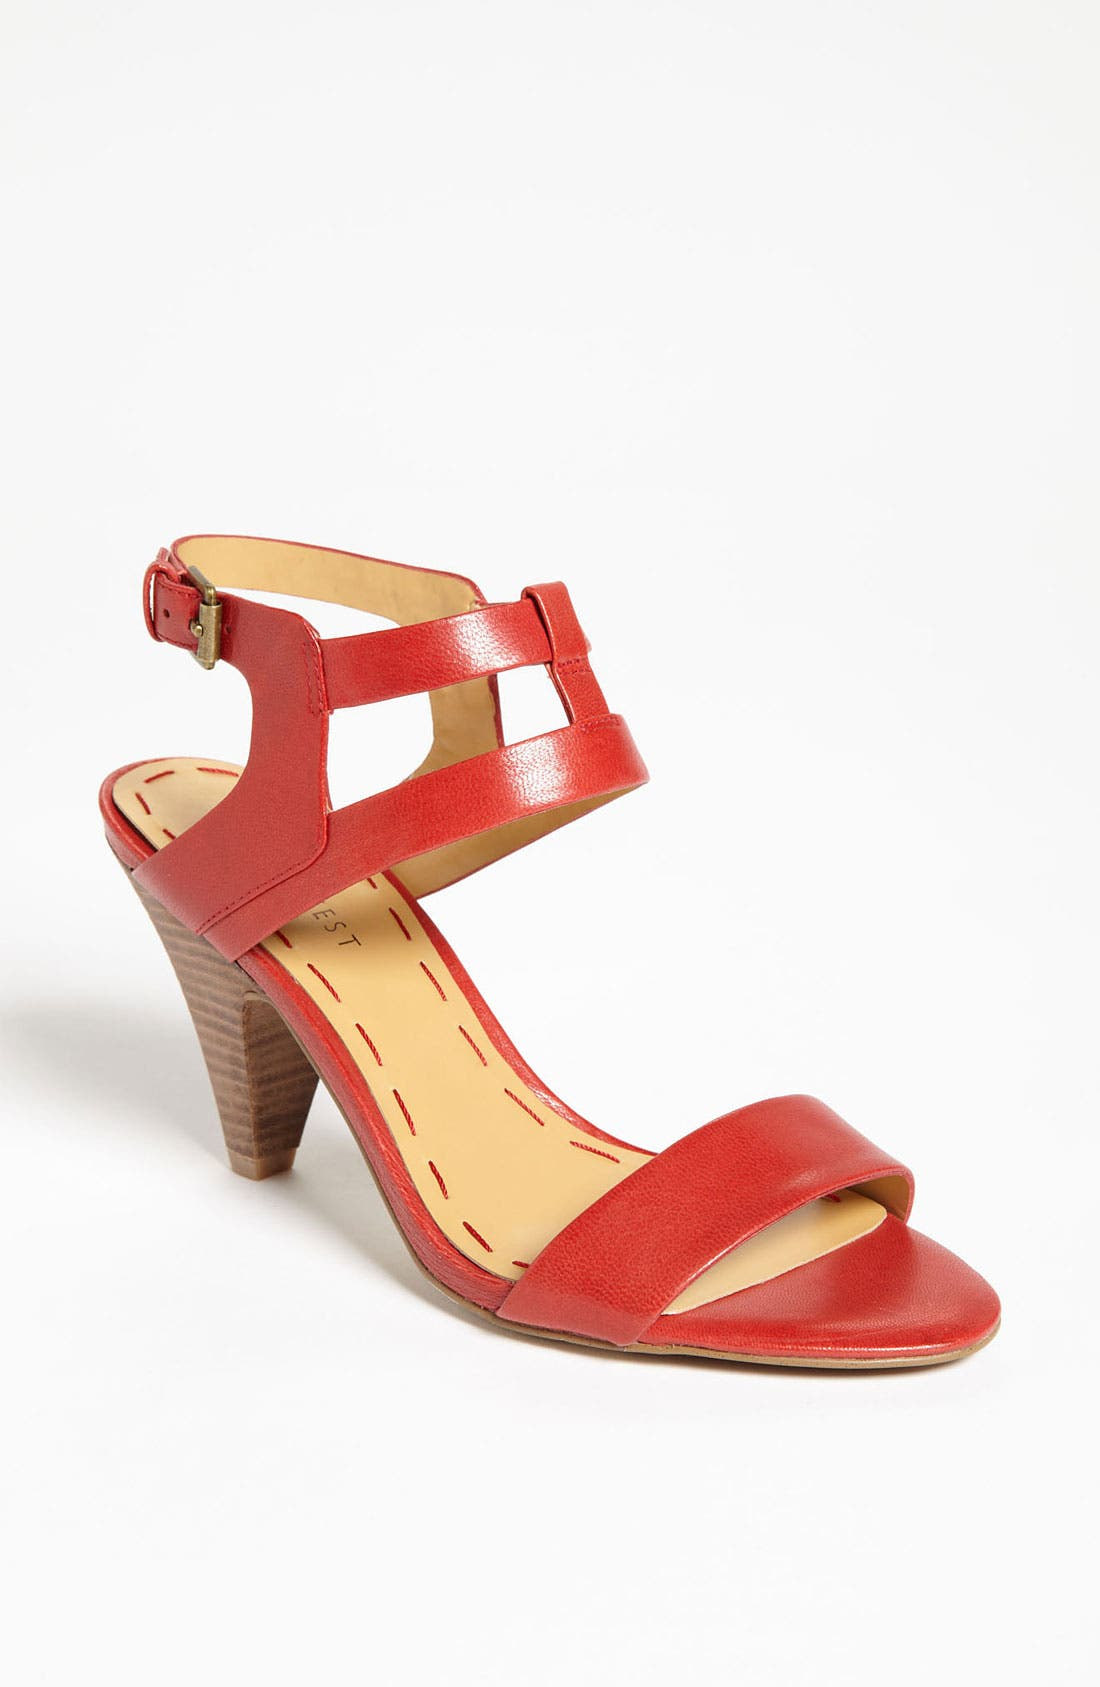 Alternate Image 1 Selected - Nine West 'Catatude' Sandal